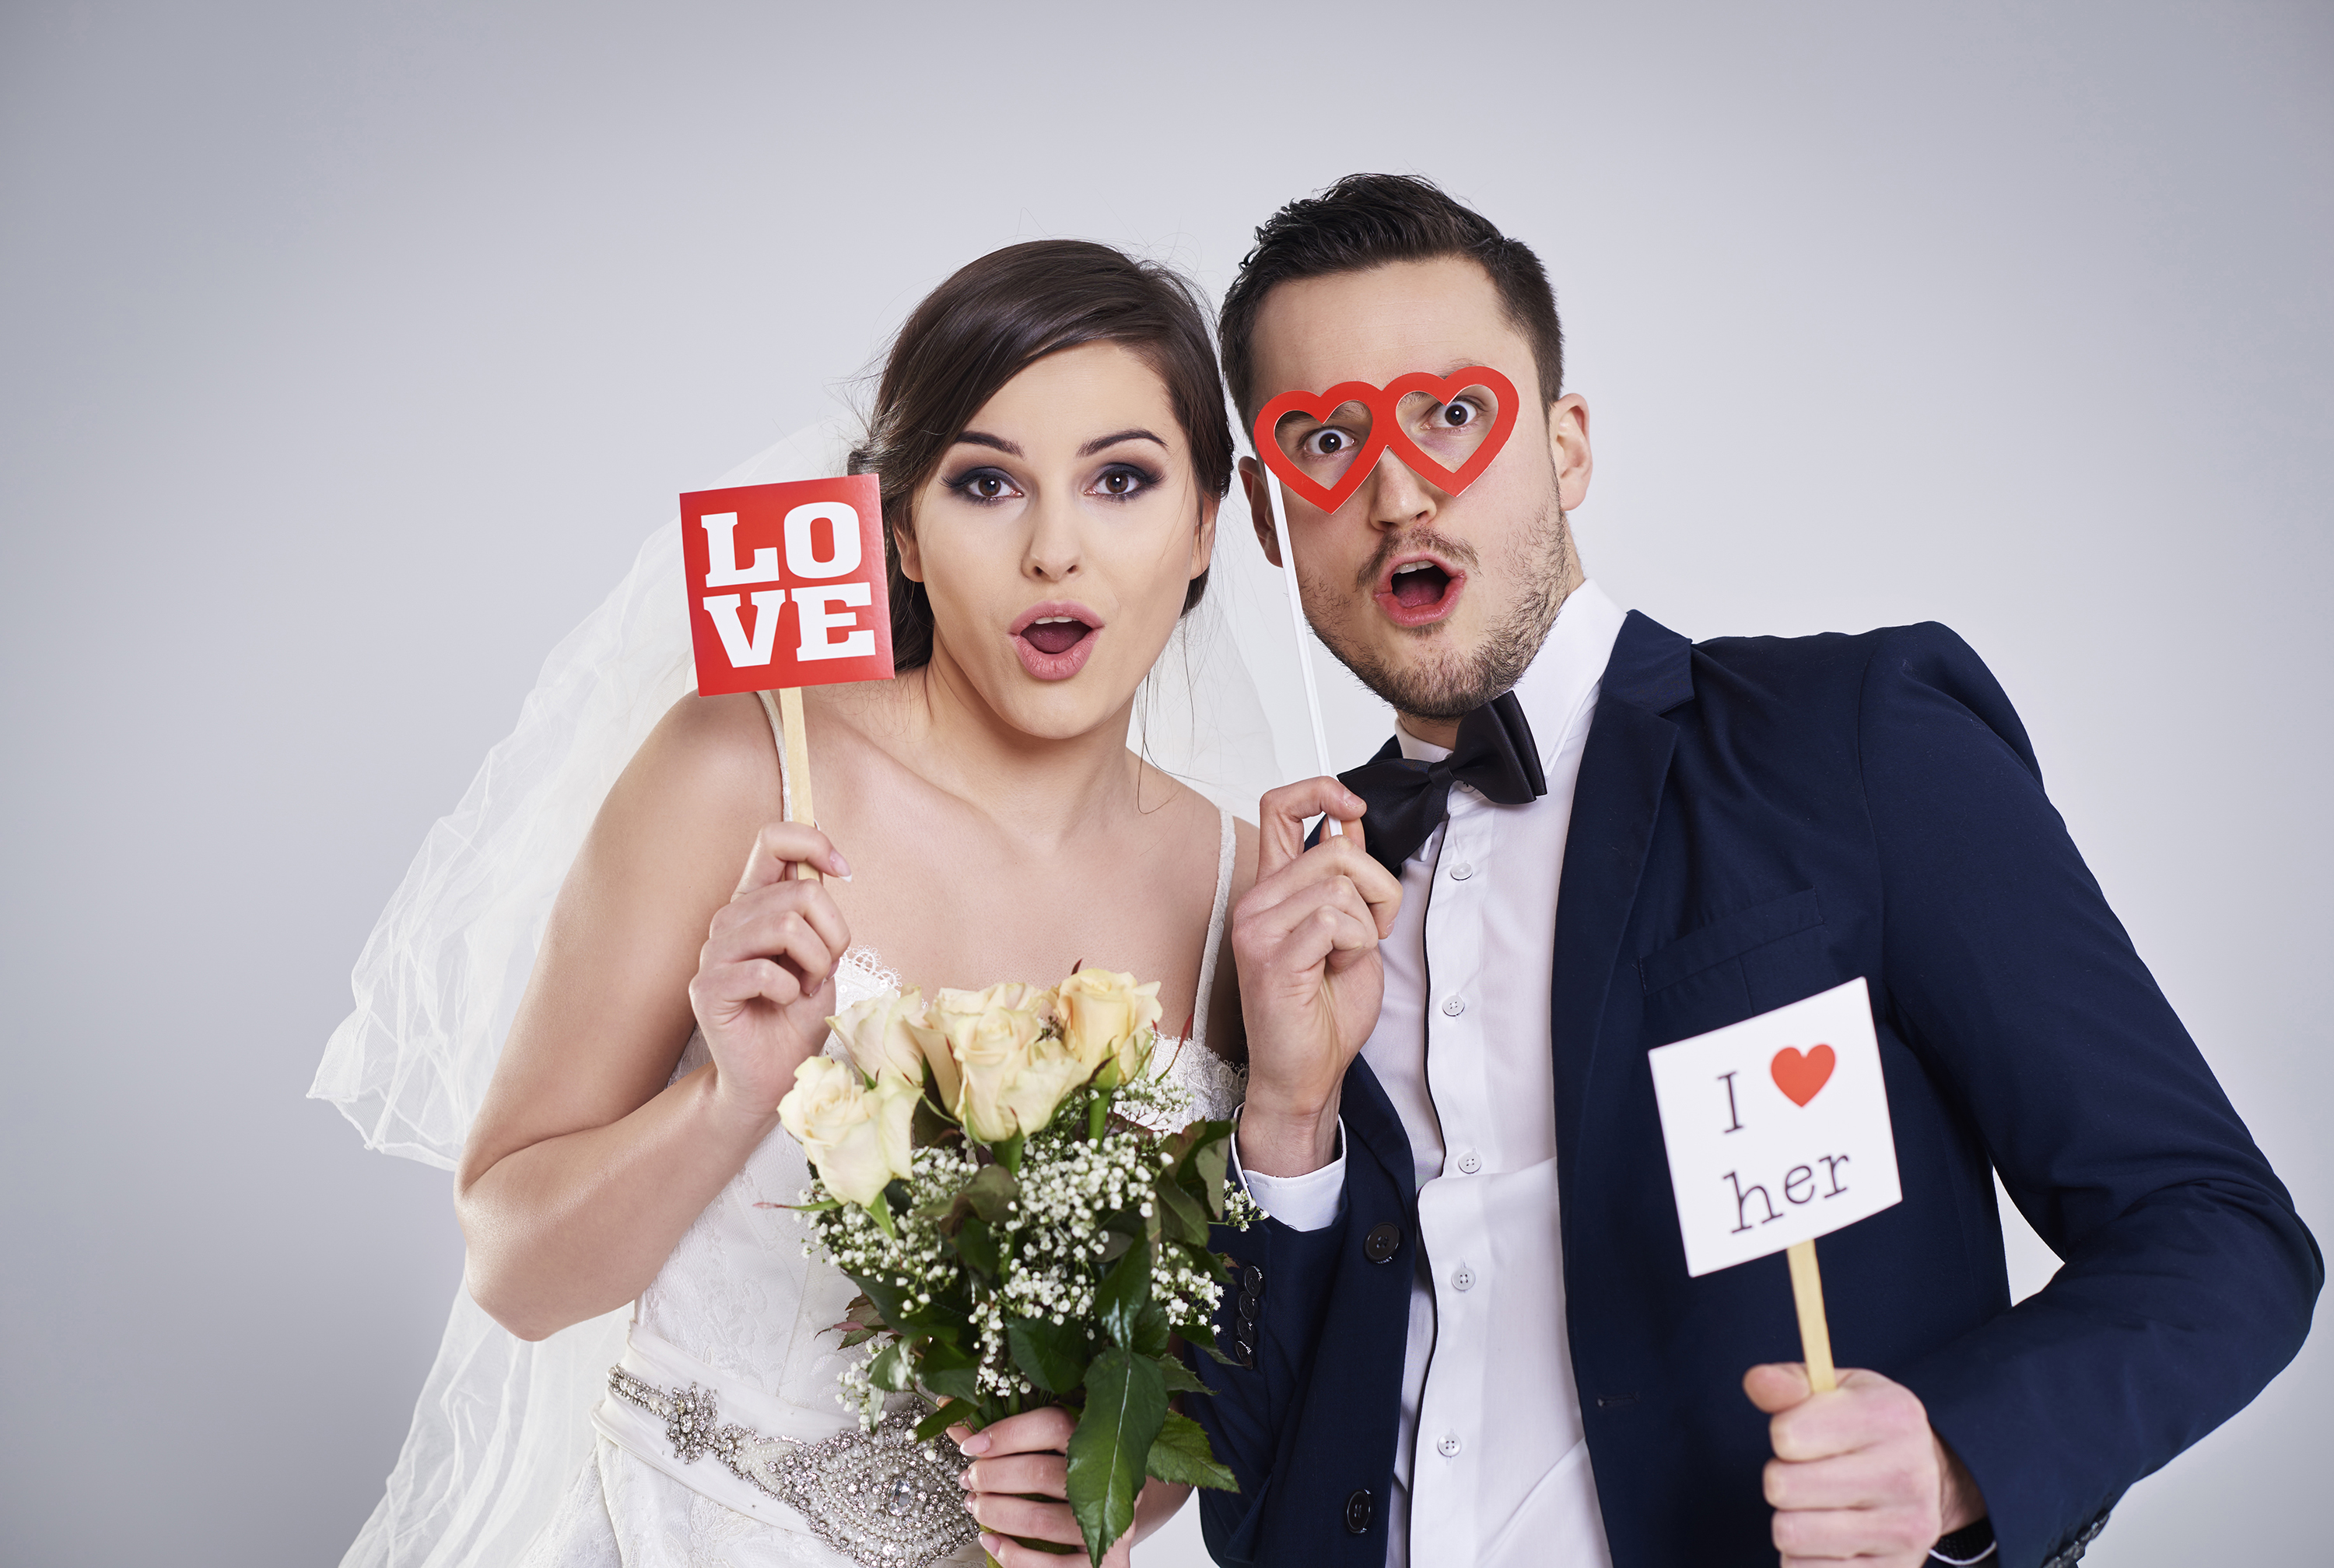 London wedding photobooth hire